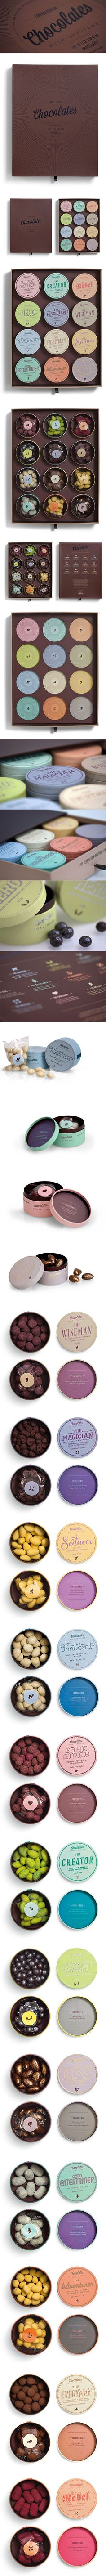 The whole branding and packaging for 2012 Chocolates With Attitude